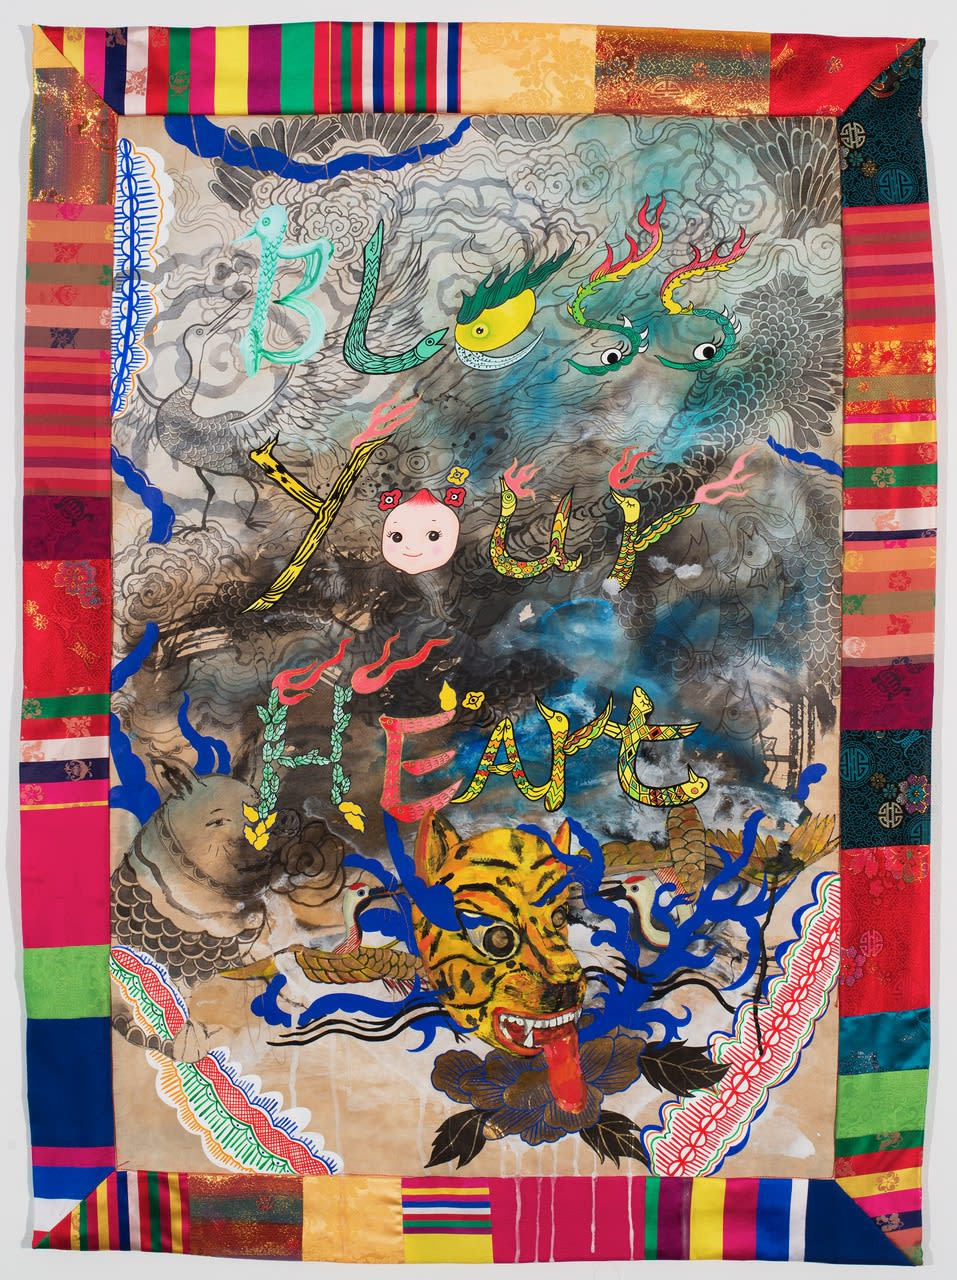 Jiha Moon, Bless your Heart, 2014 Ink and acrylic on Haniji paper, quilted border, 39 x 28 1/2 in